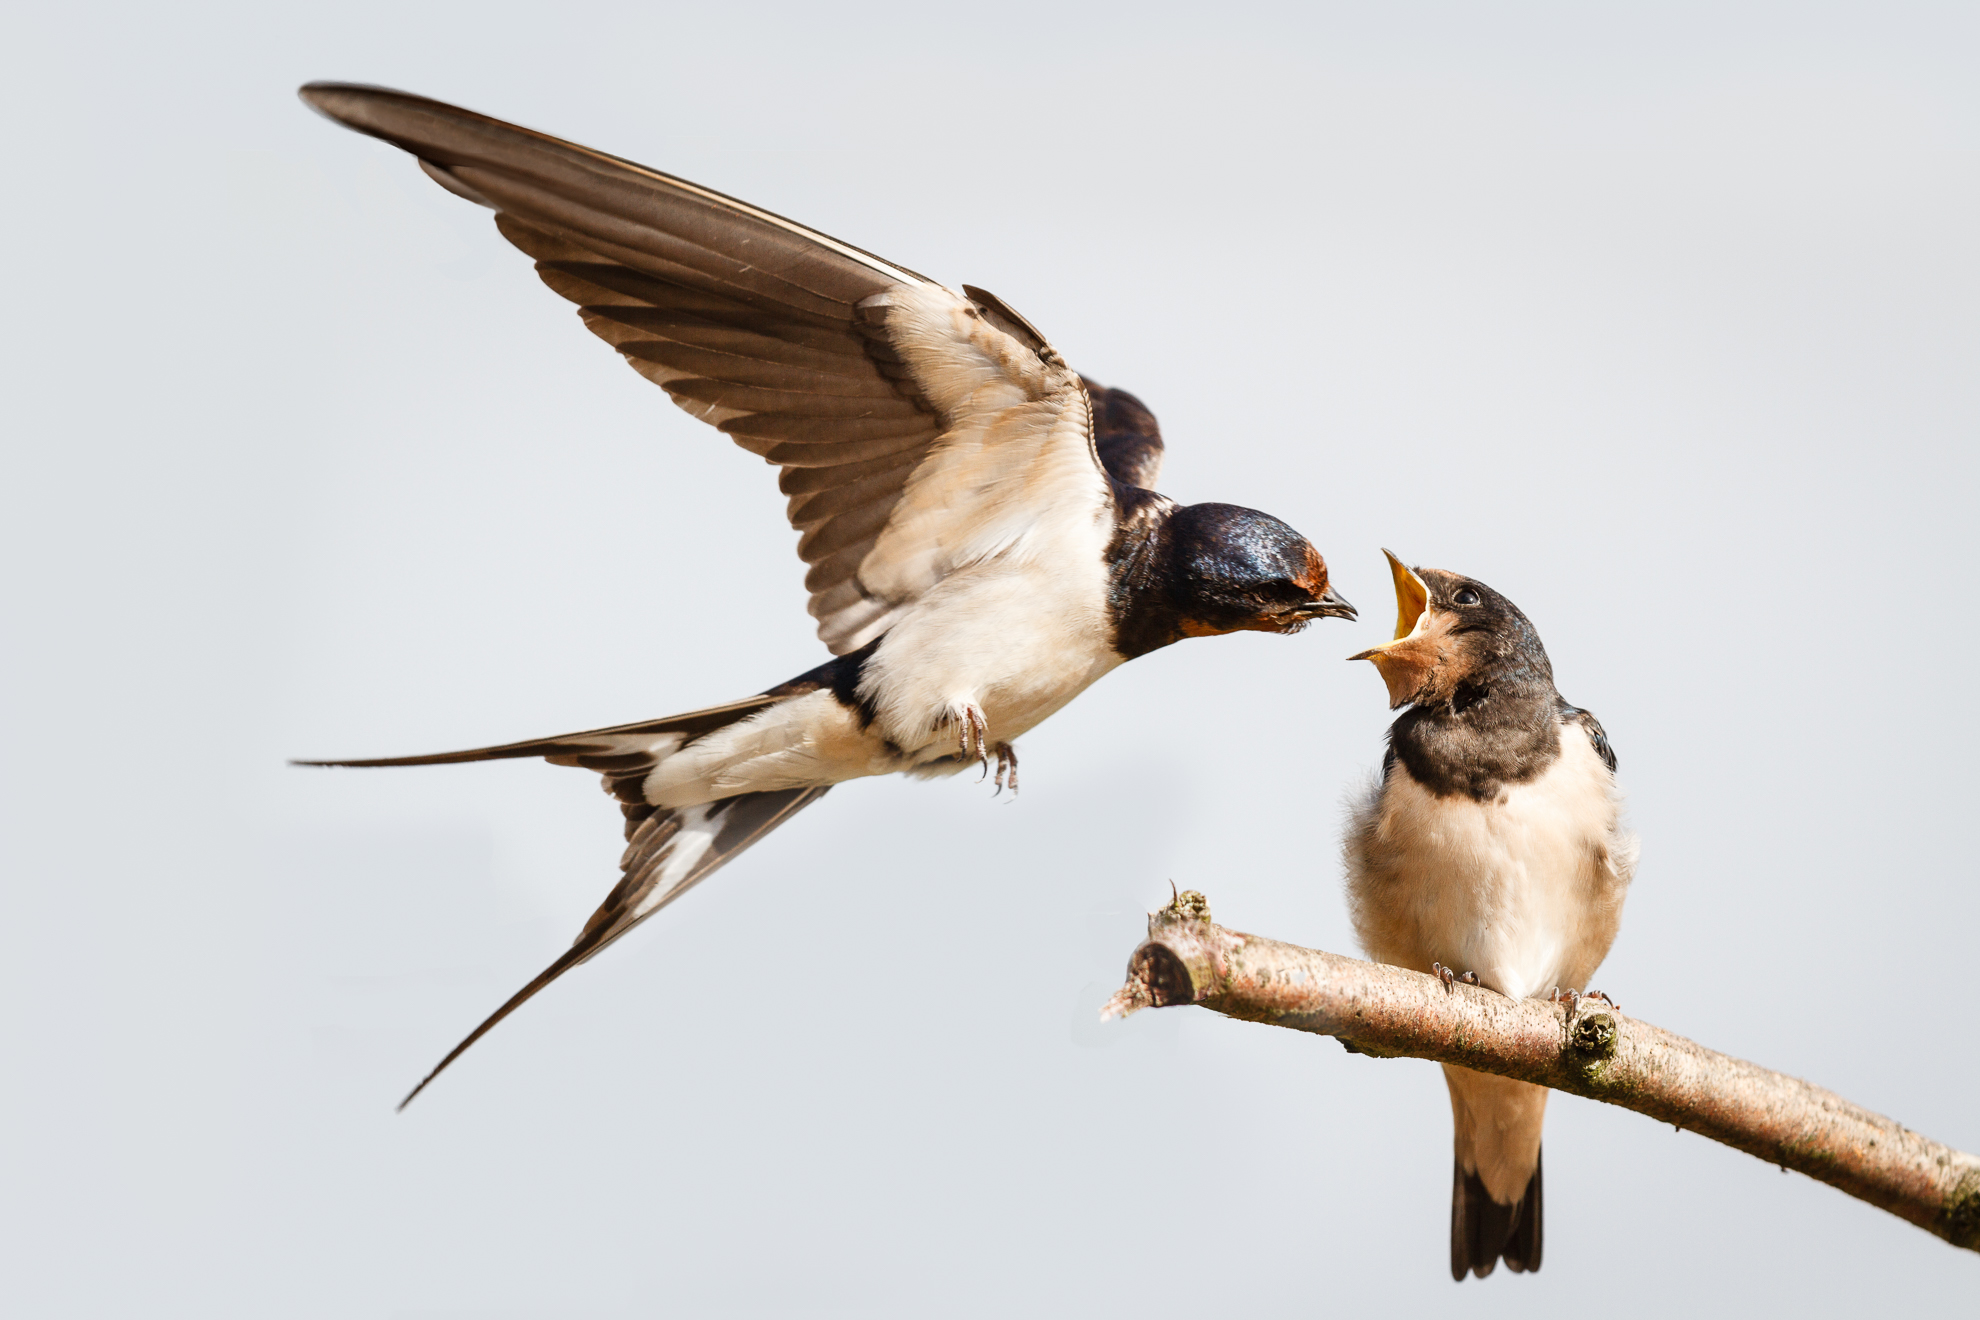 2 Swallow feeding young